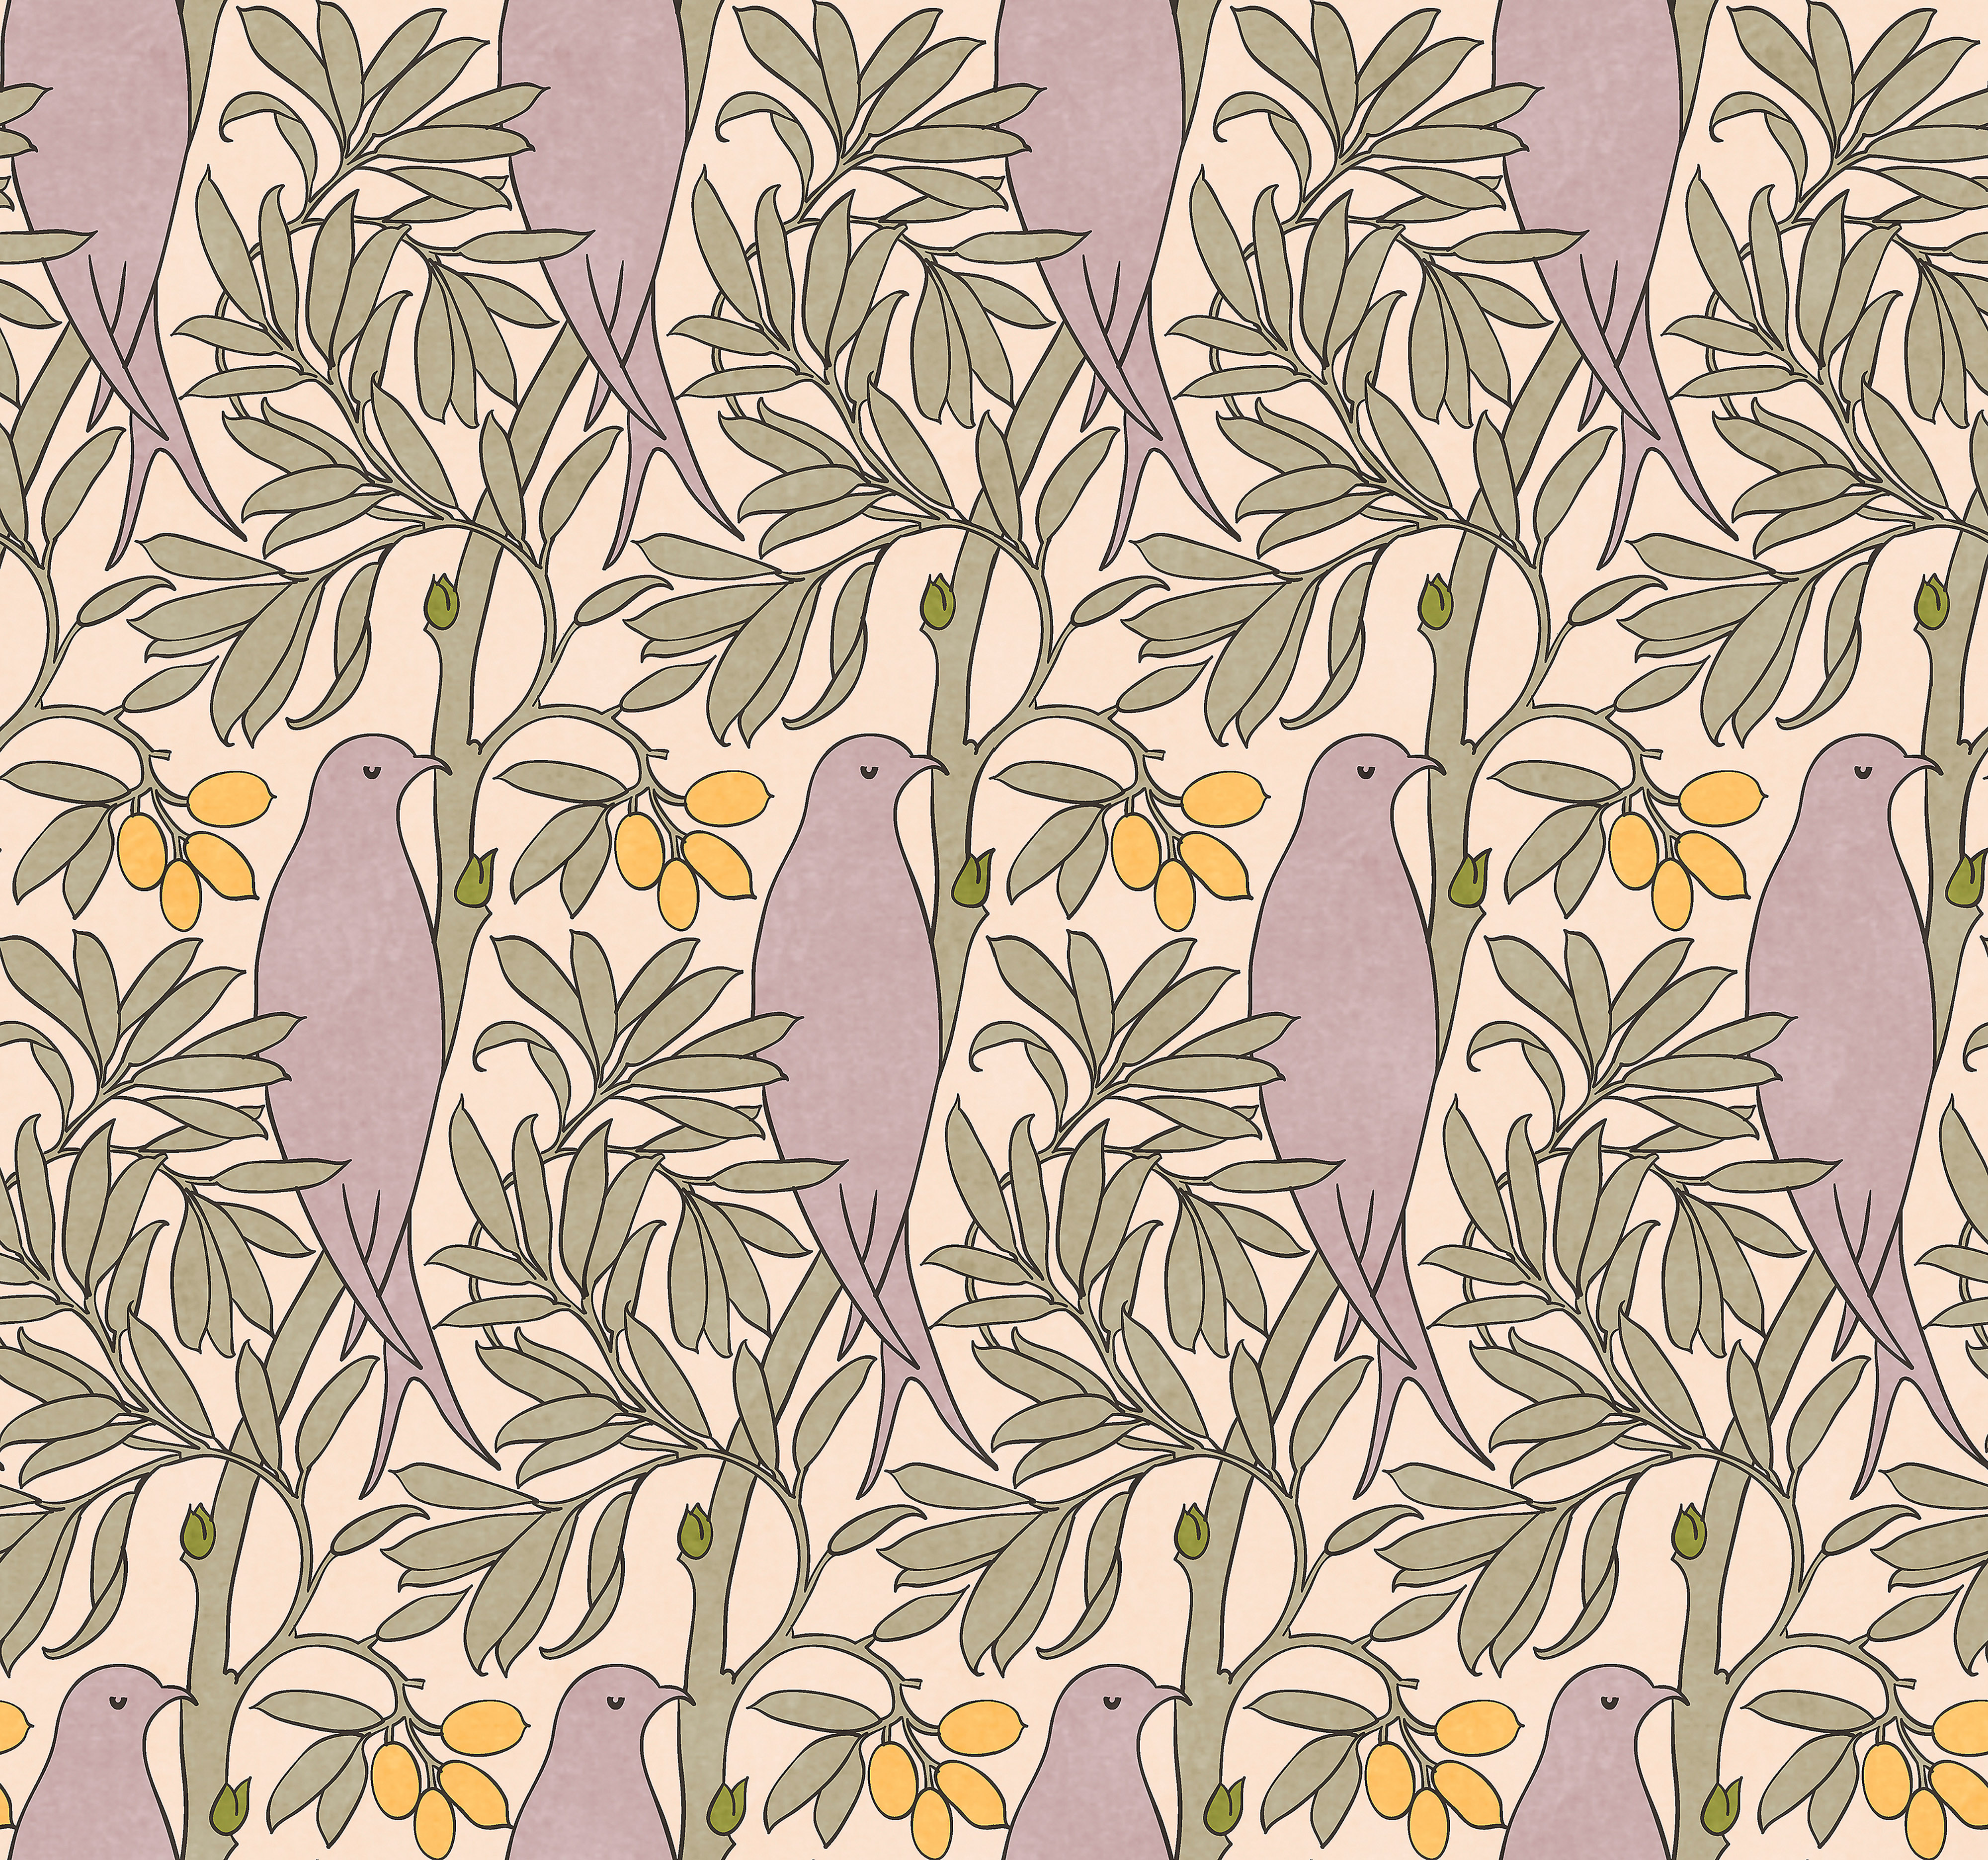 Reproduced C.F.A. Voysey design